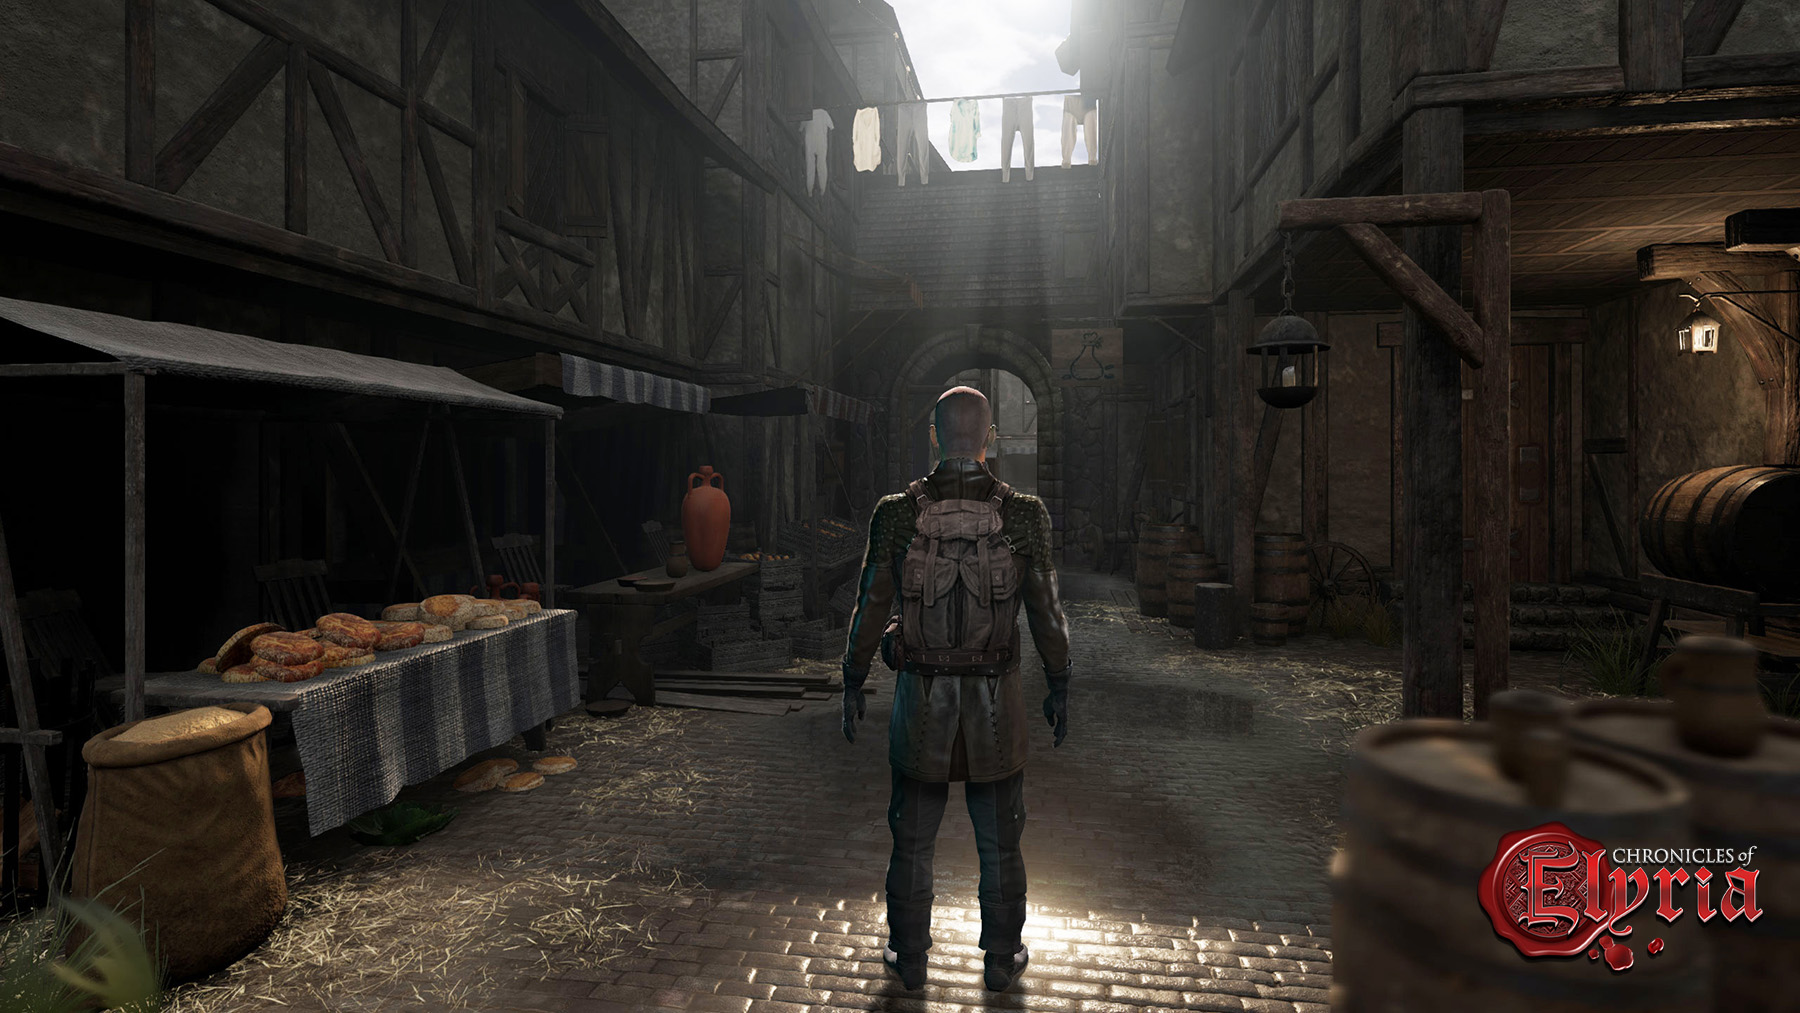 In-game view of a character with their backpack on